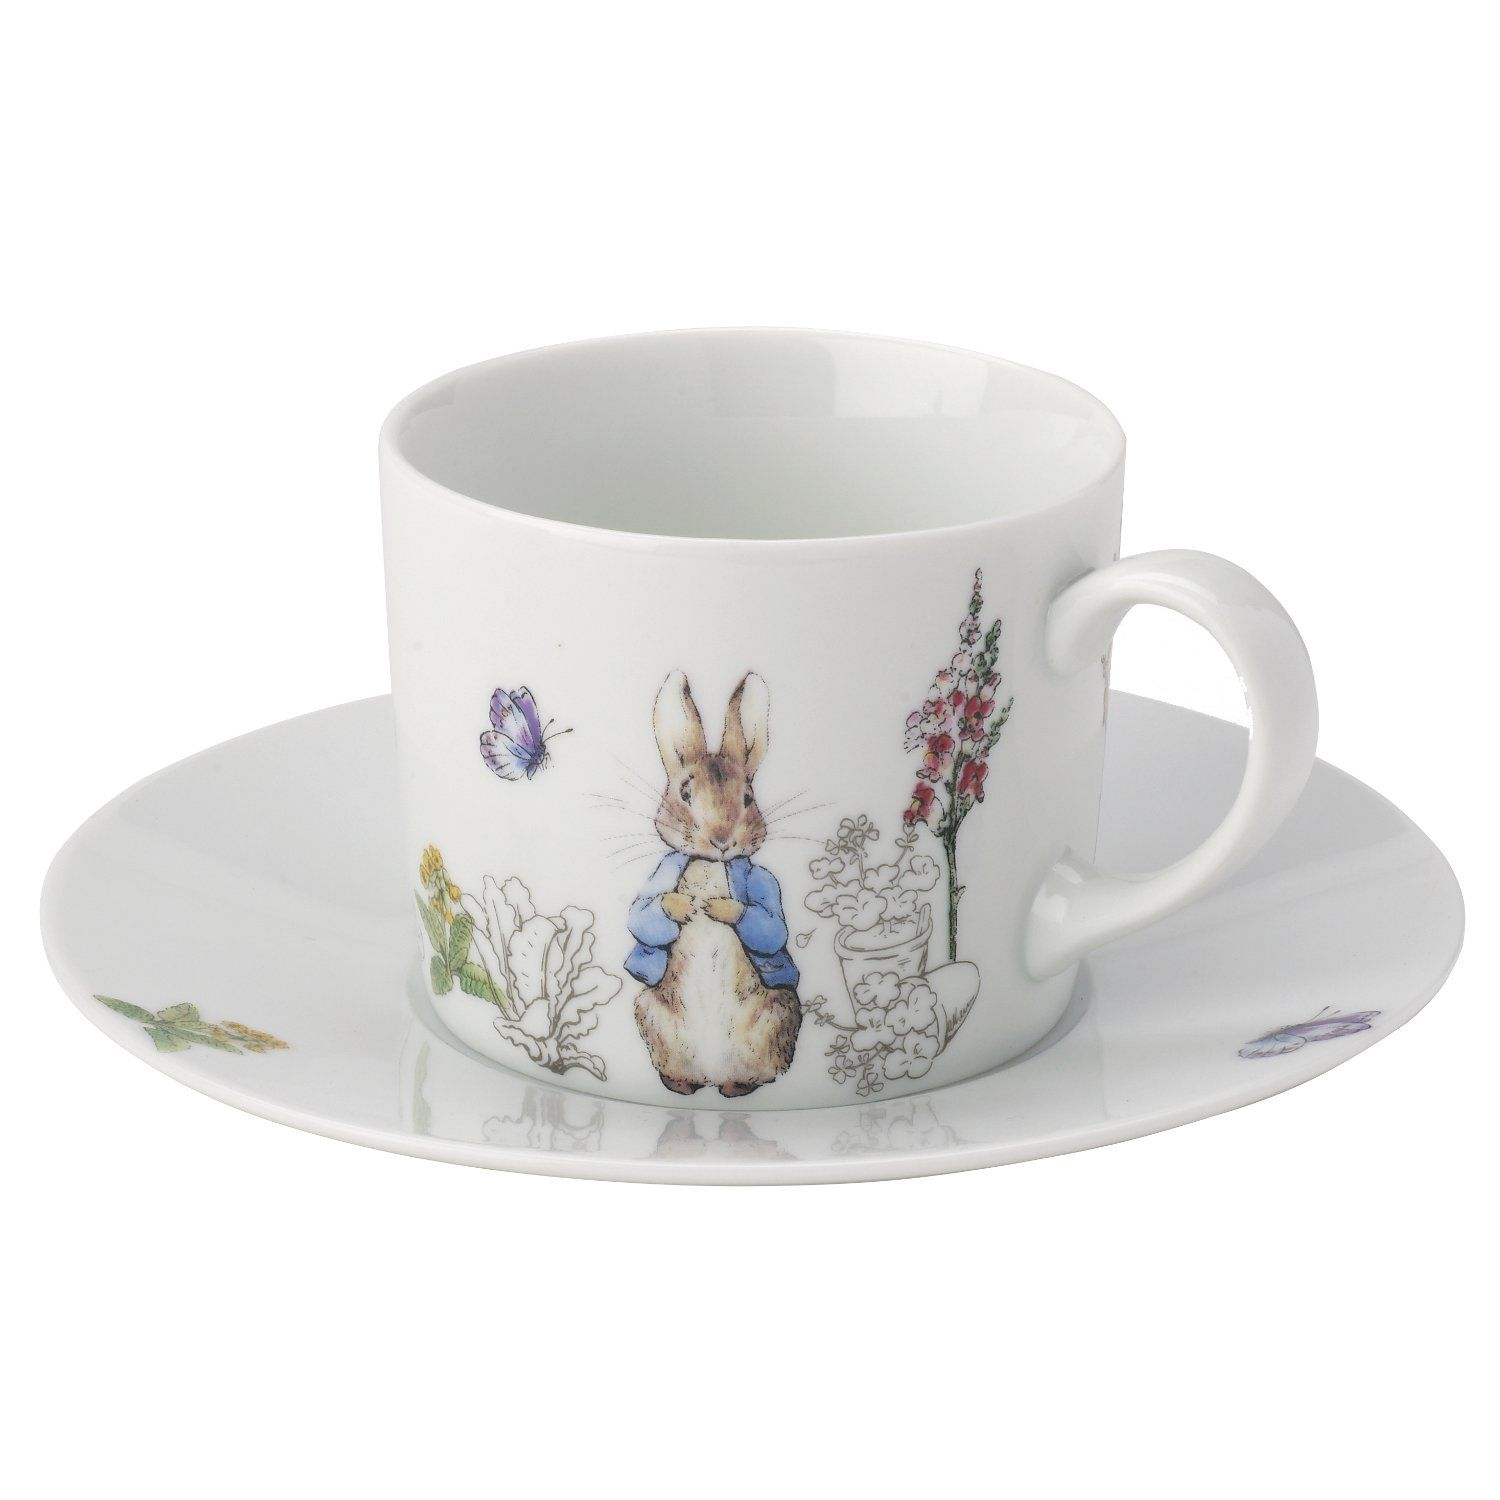 Peter Rabbit Peter Rabbit Classic Cup and Saucer